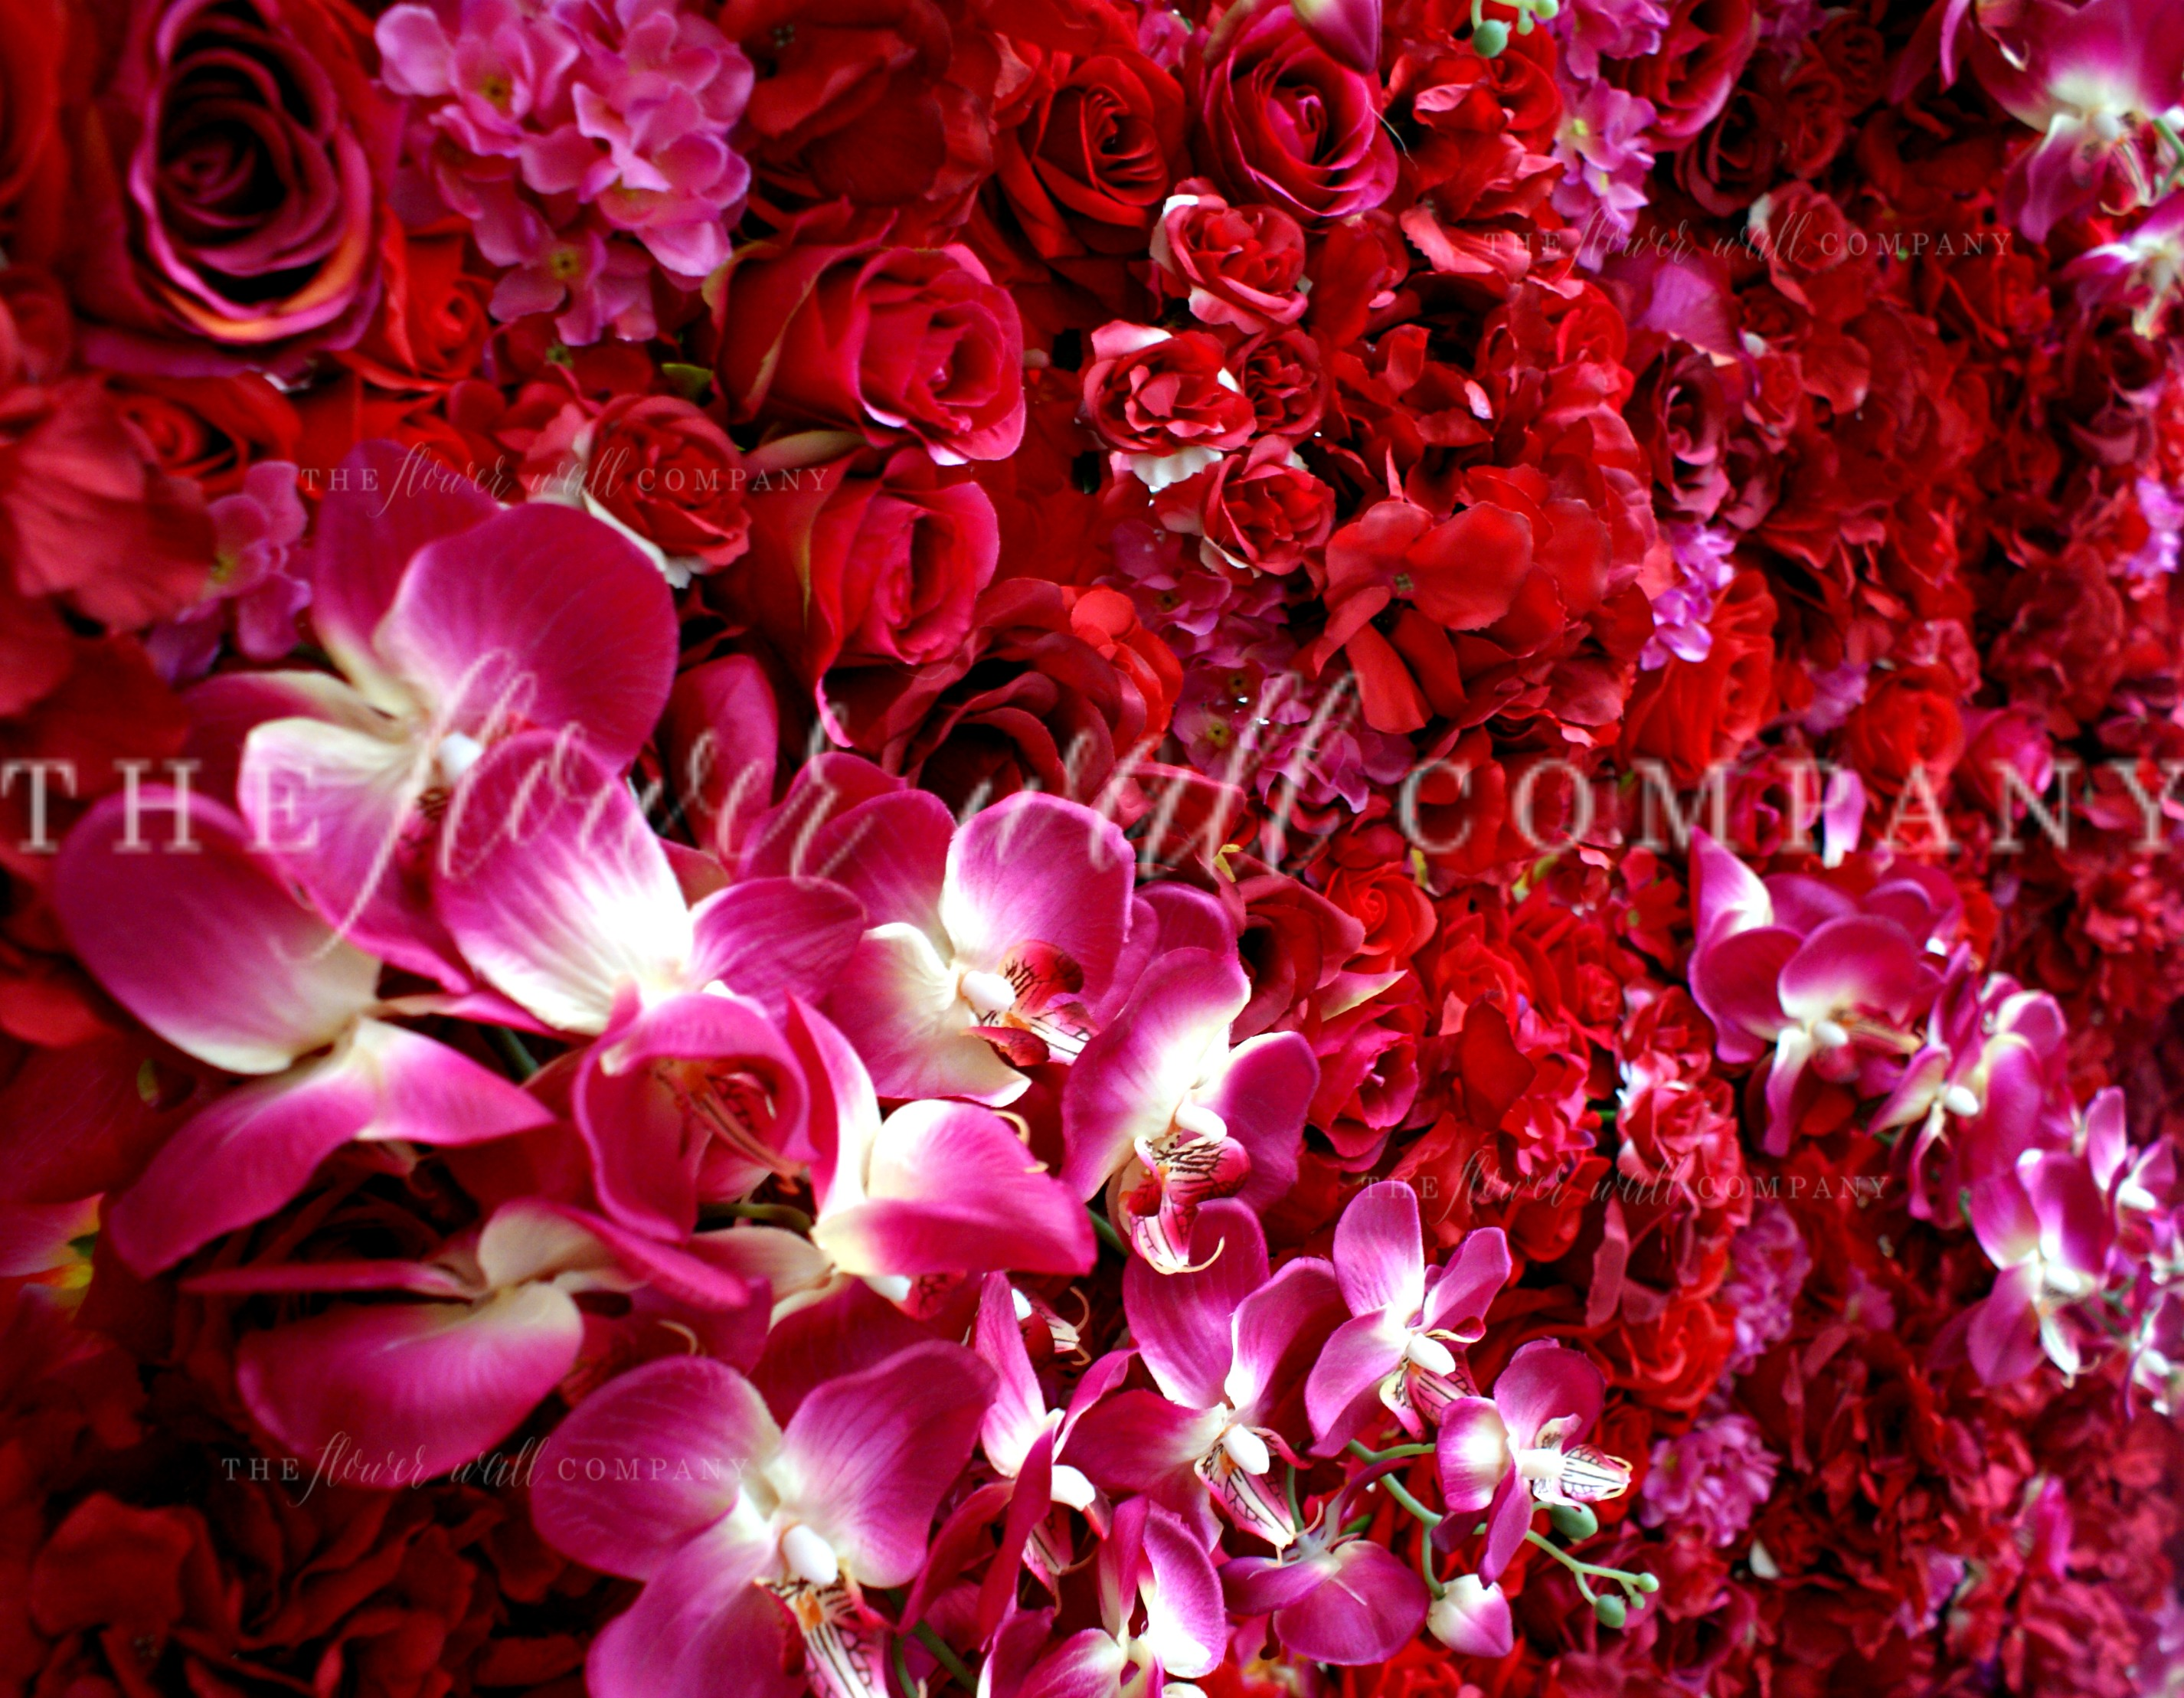 Red and pink flower wall floral backdrop with roses, orchids and hydrangea for weddings and events